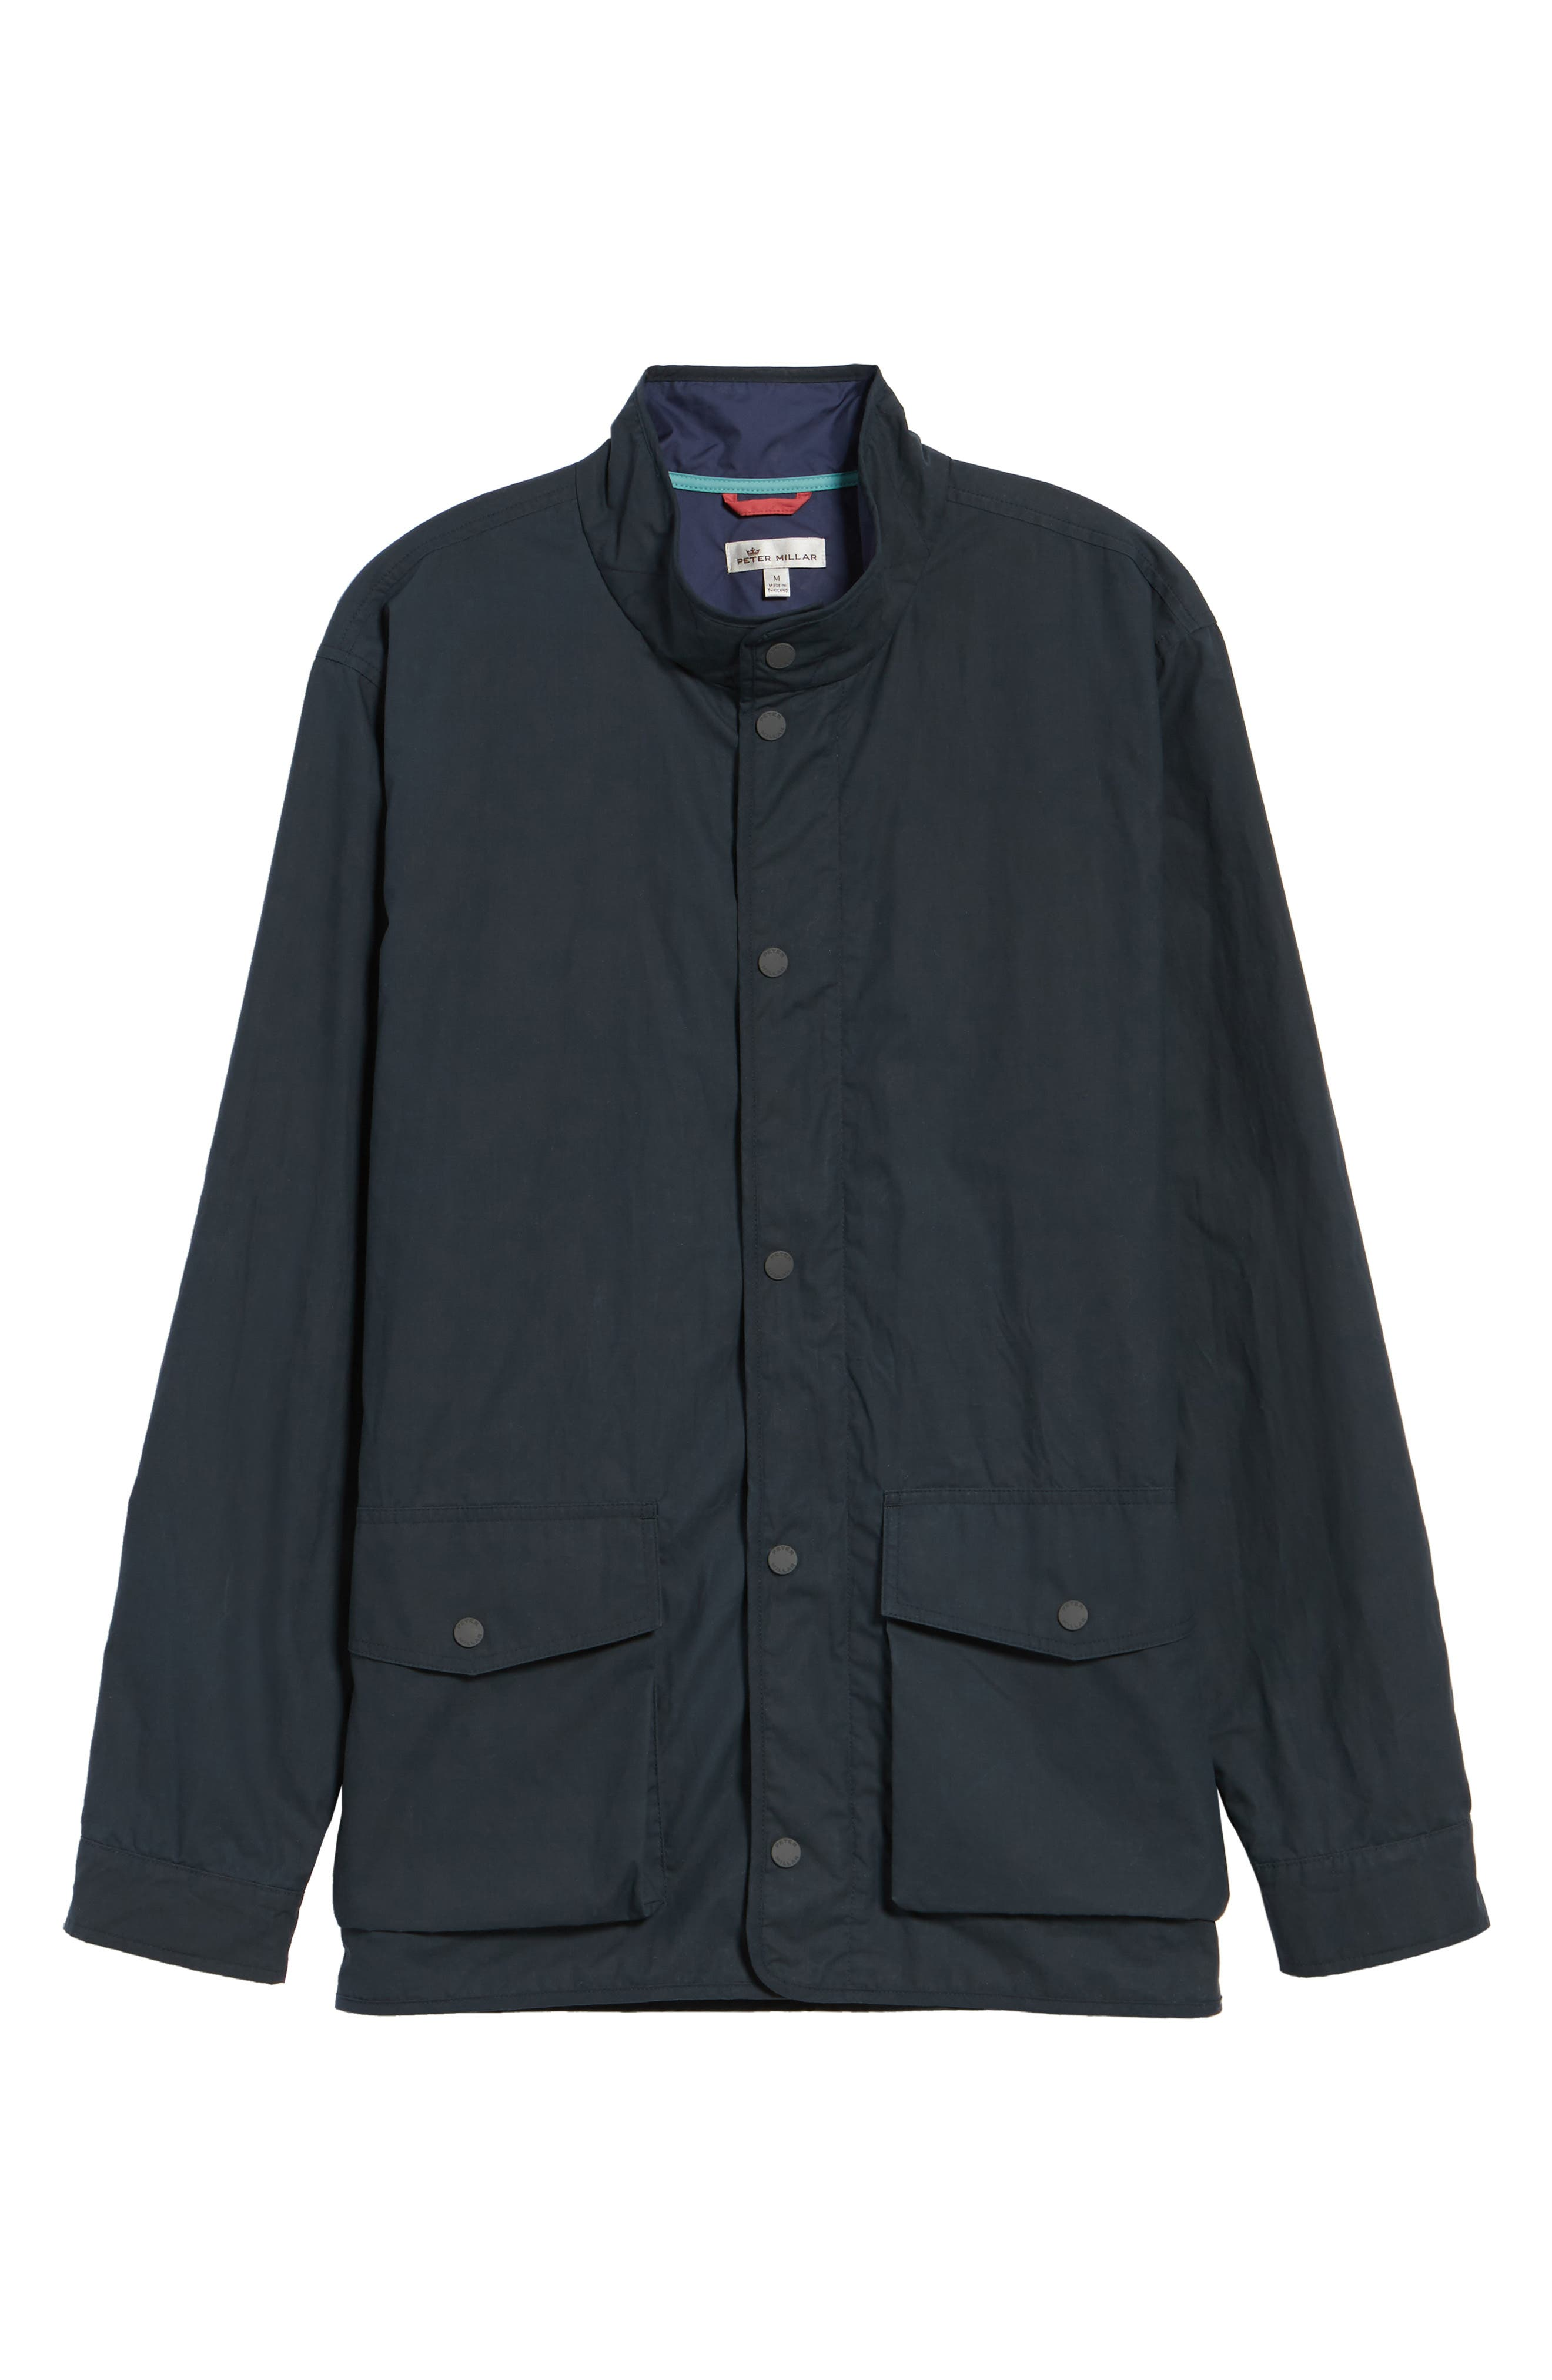 Harrison Wine Country Field Jacket,                             Alternate thumbnail 10, color,